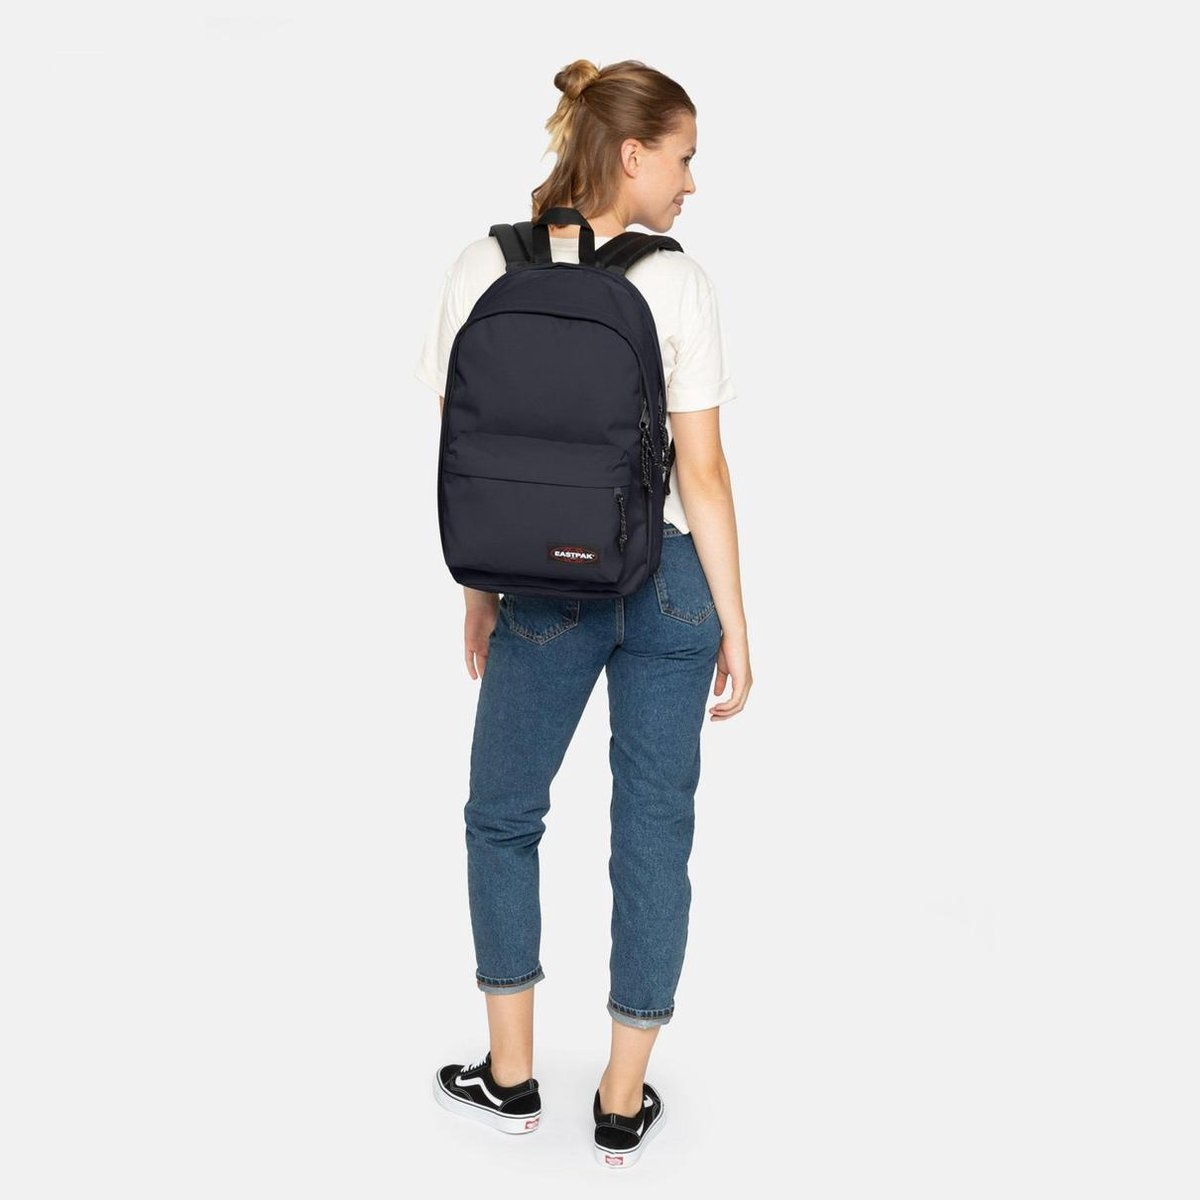 Eastpak Eastpak Back To Work schooltas met laptopvak   - Night Navy